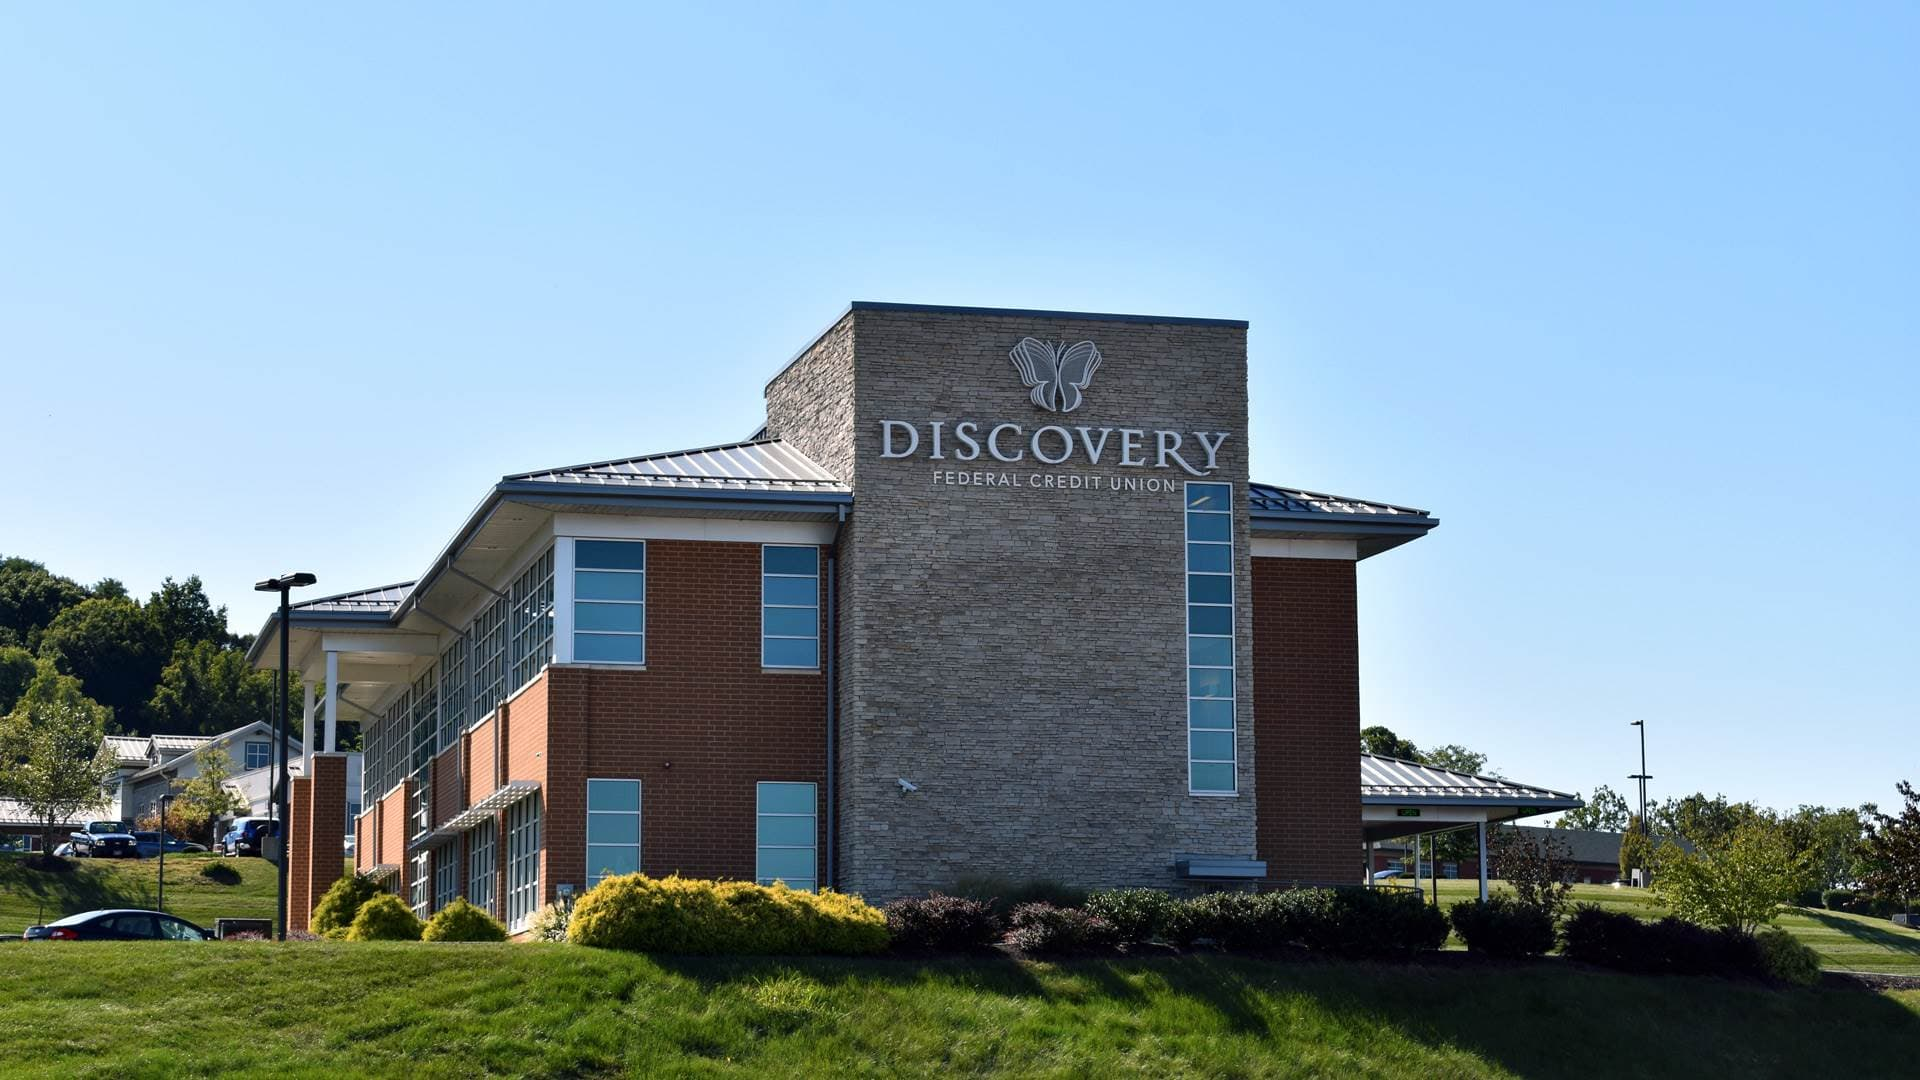 Discovery Federal Credit Union